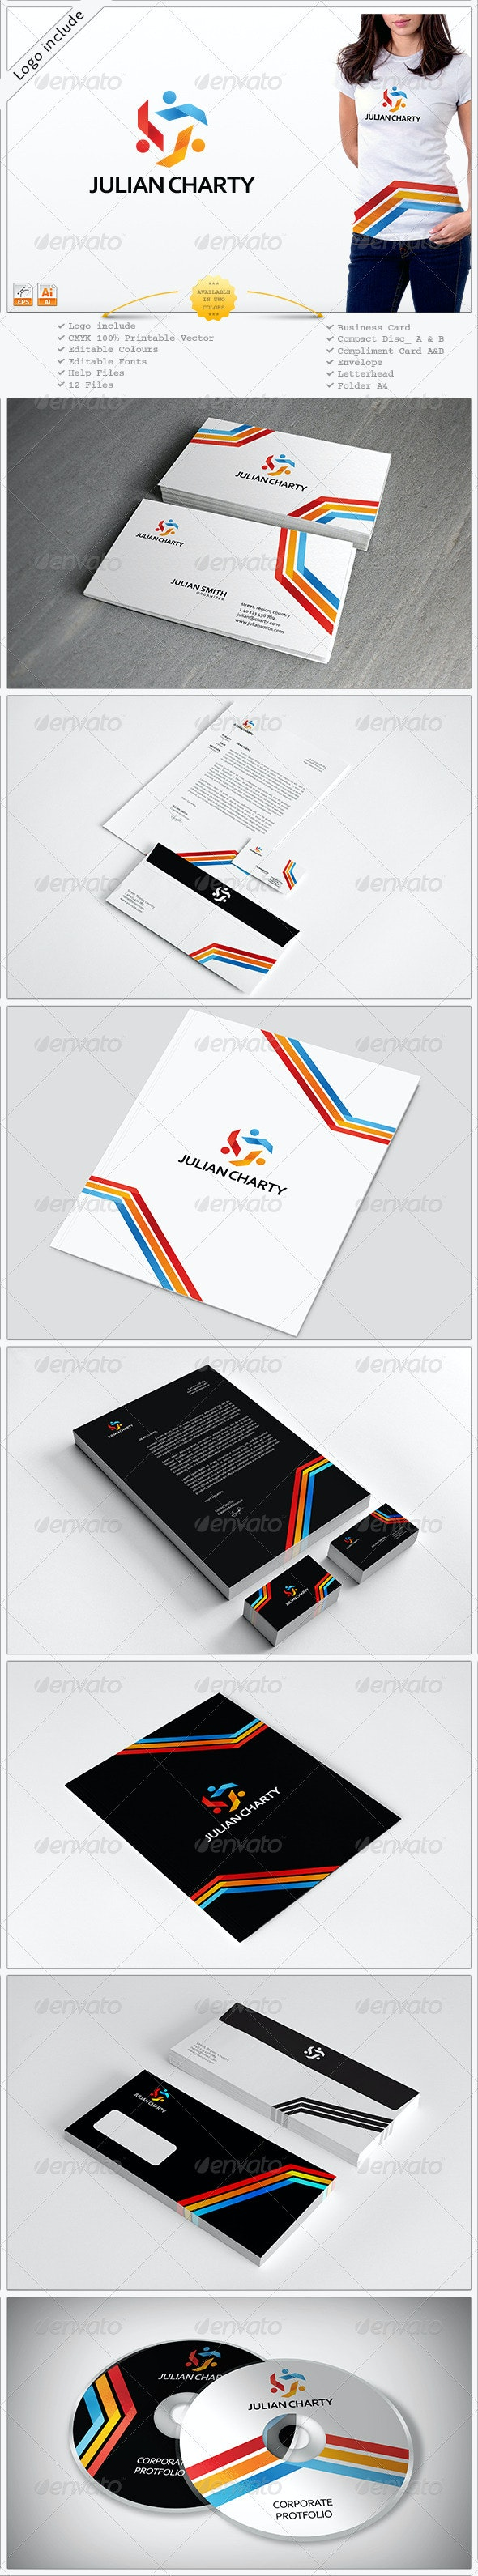 Two in One Corporate Identity - Stationery Print Templates